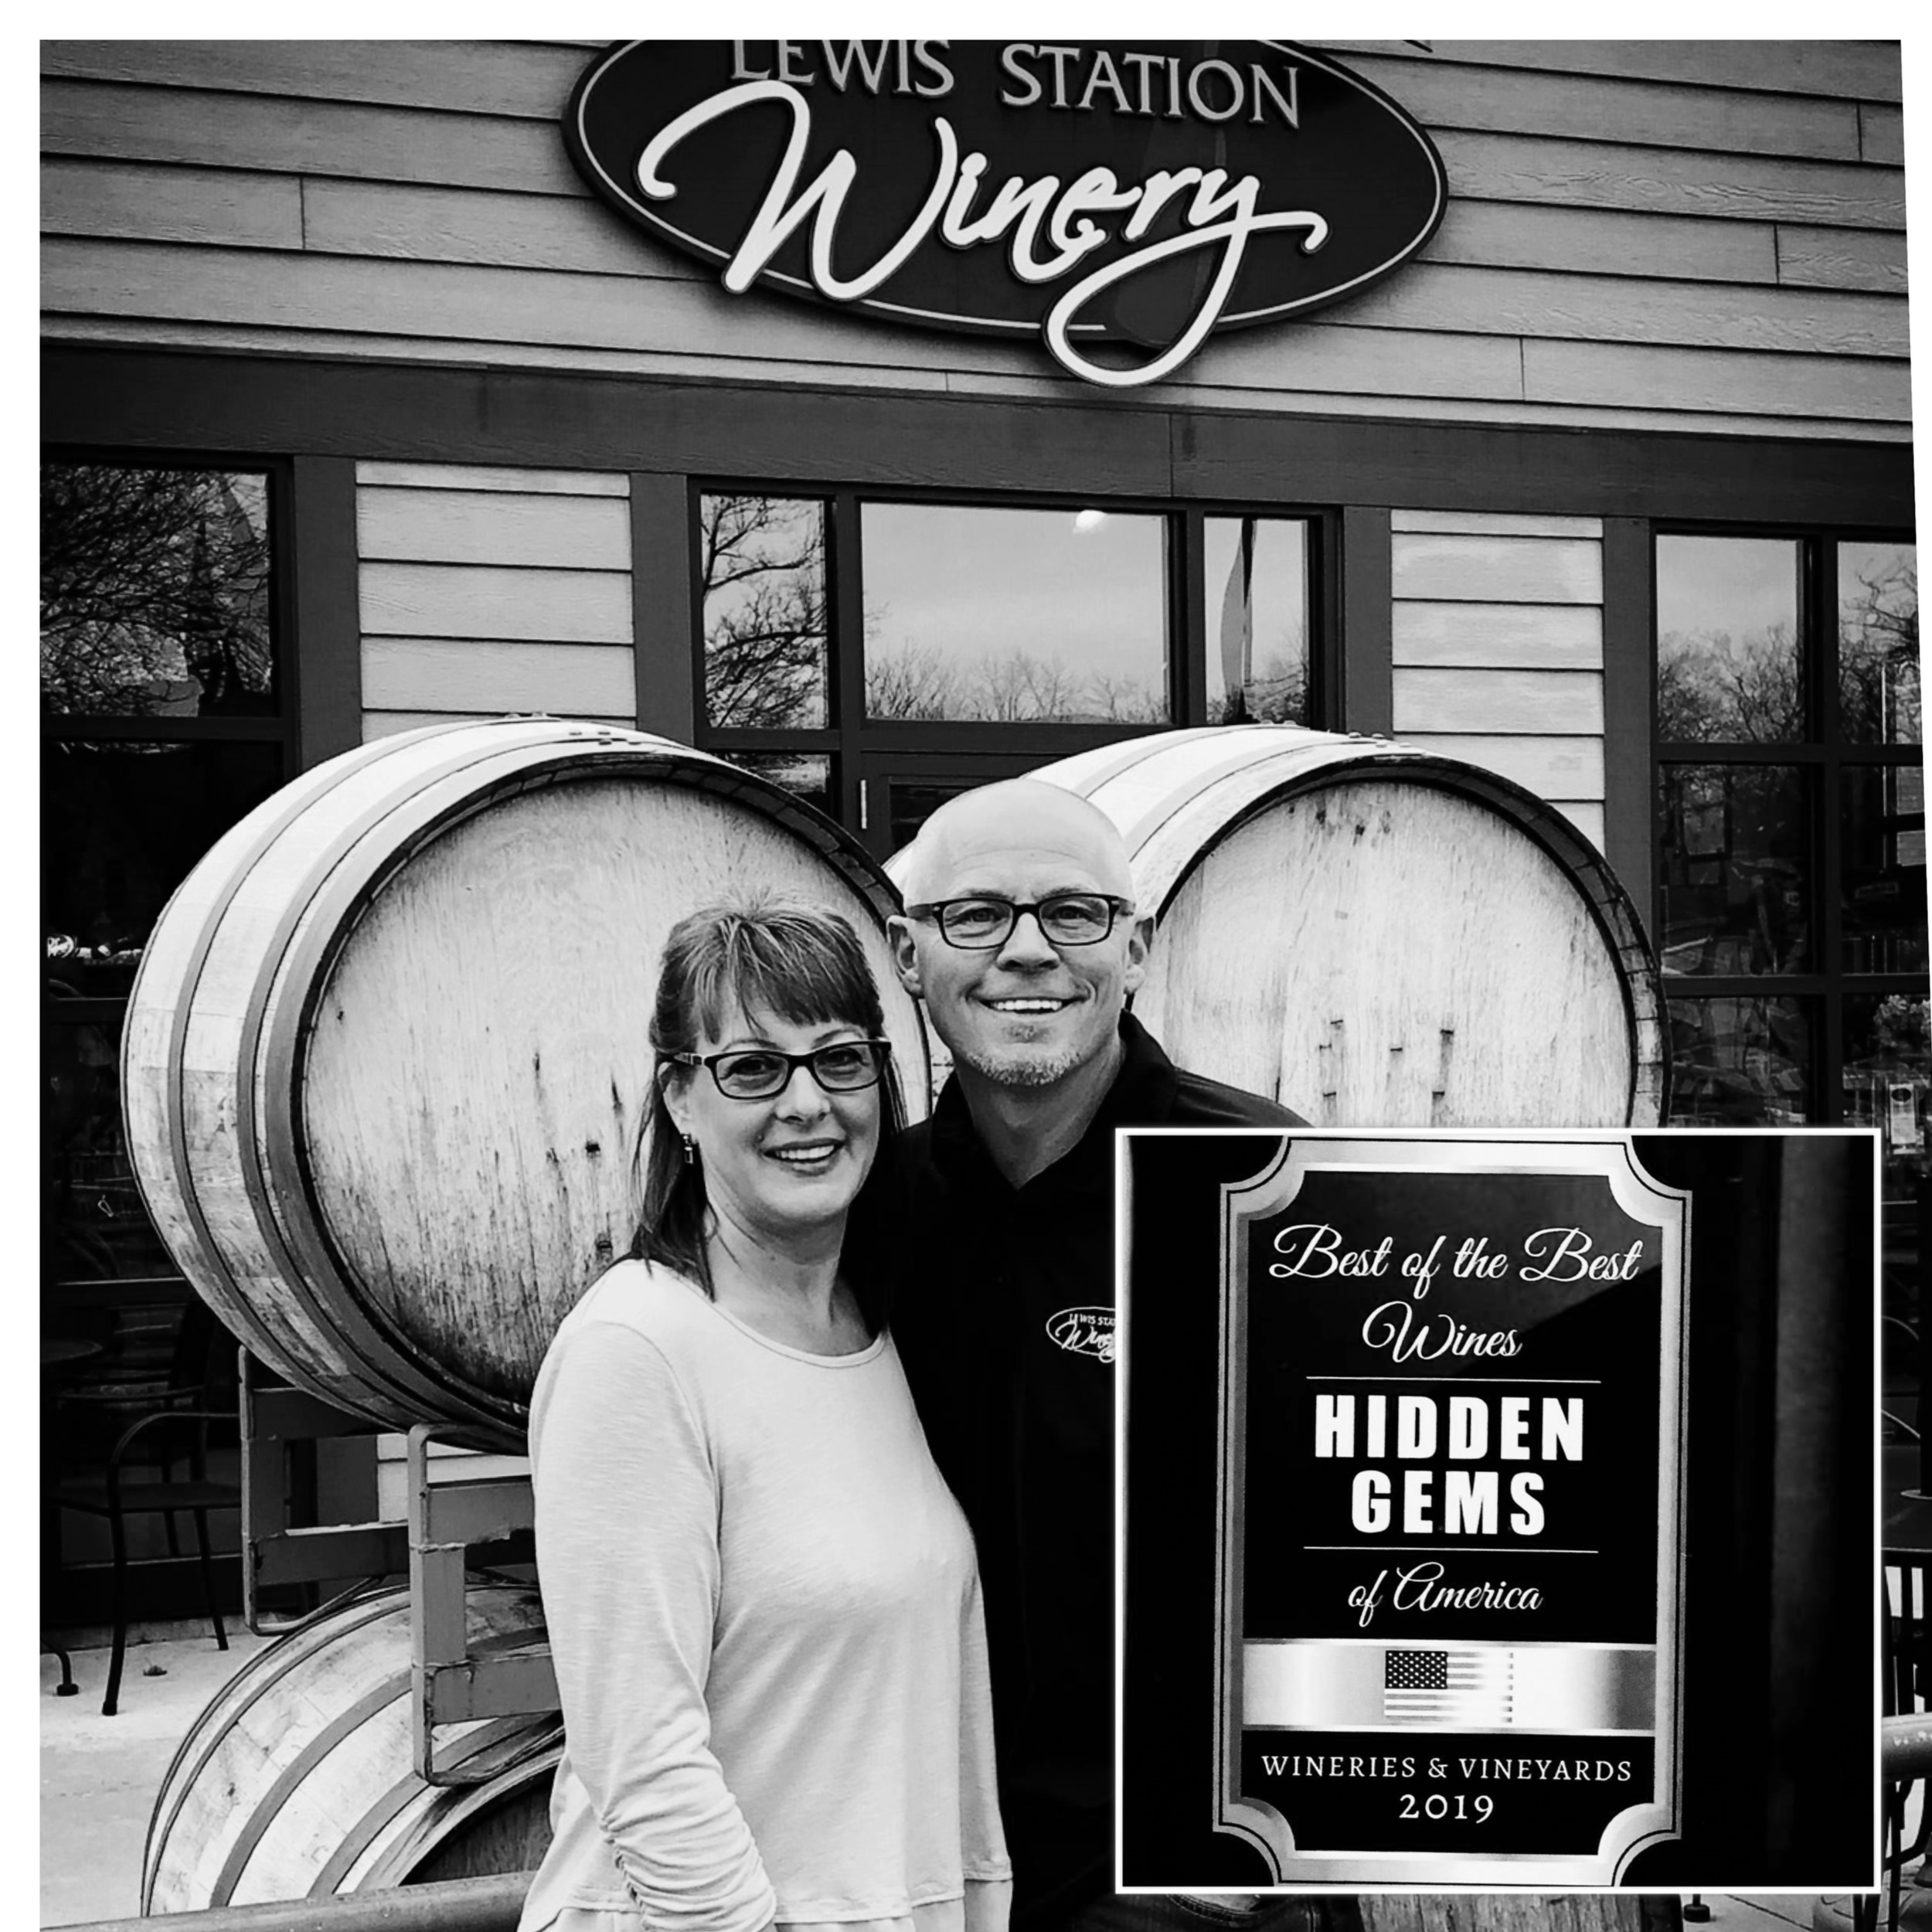 "Hidden Gems of America - 2019 - We're excited to announce that Lewis Station Winery was 1 of 40 wineries in the country to be featured in the newest release of ""Best of the Best Wines - Hidden Gems of America 2019"""